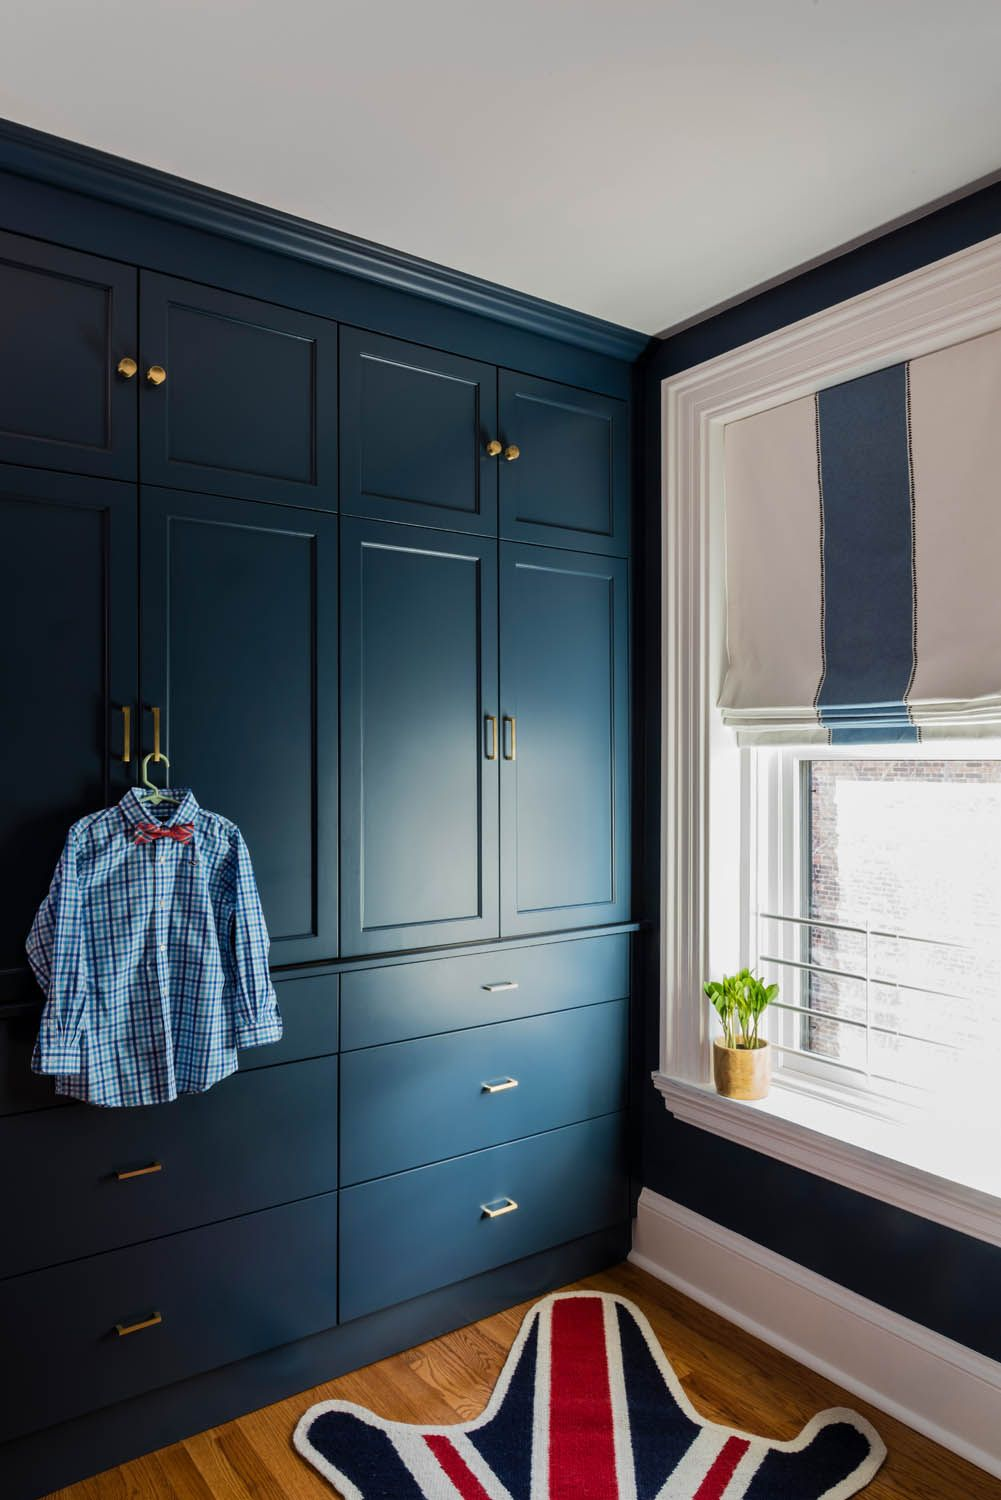 boston brookline areas company in and rentals brighton village closets provides hamilton the apartment prop closet